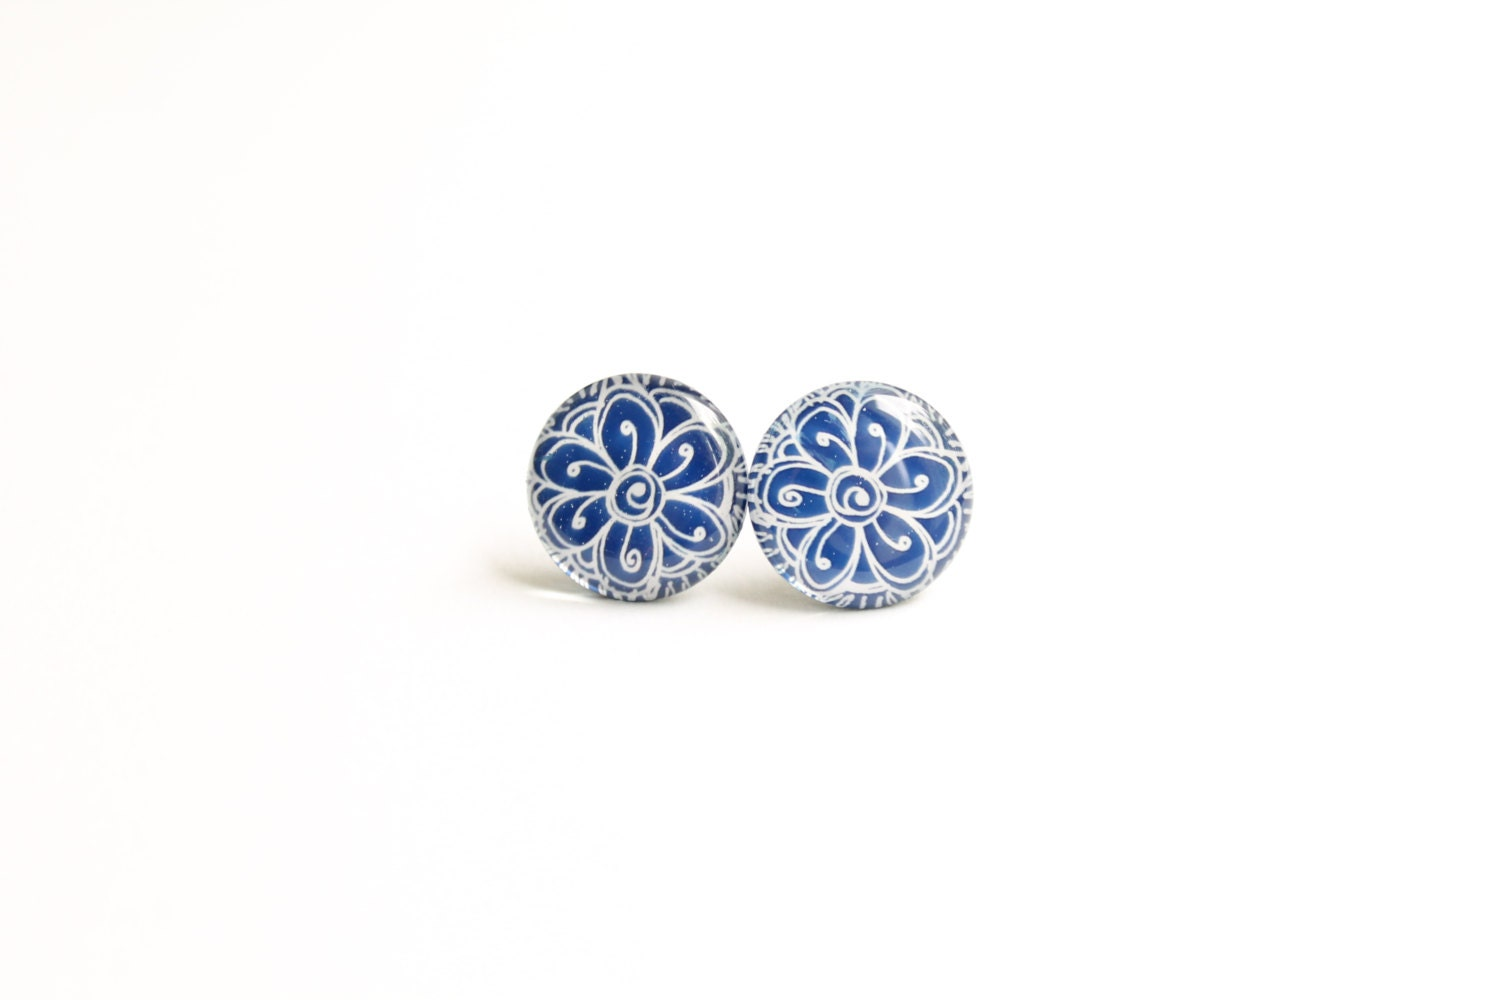 Blue stud earrings, tribal earrings, blue earrings, blue studs, blue europeanstreetteam - Kadrizinha